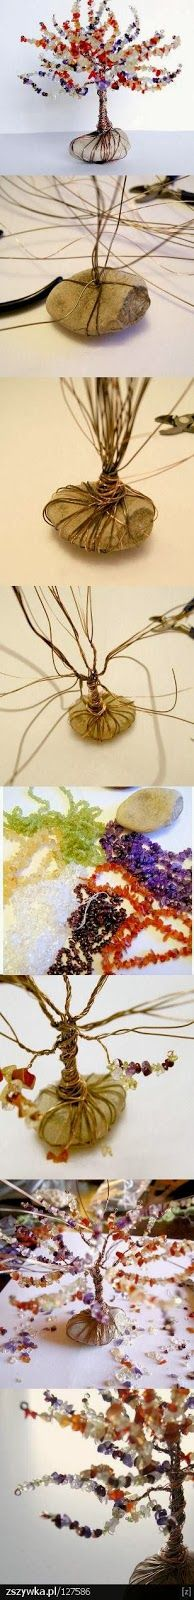 DIY Tree of Life Ideas To Make